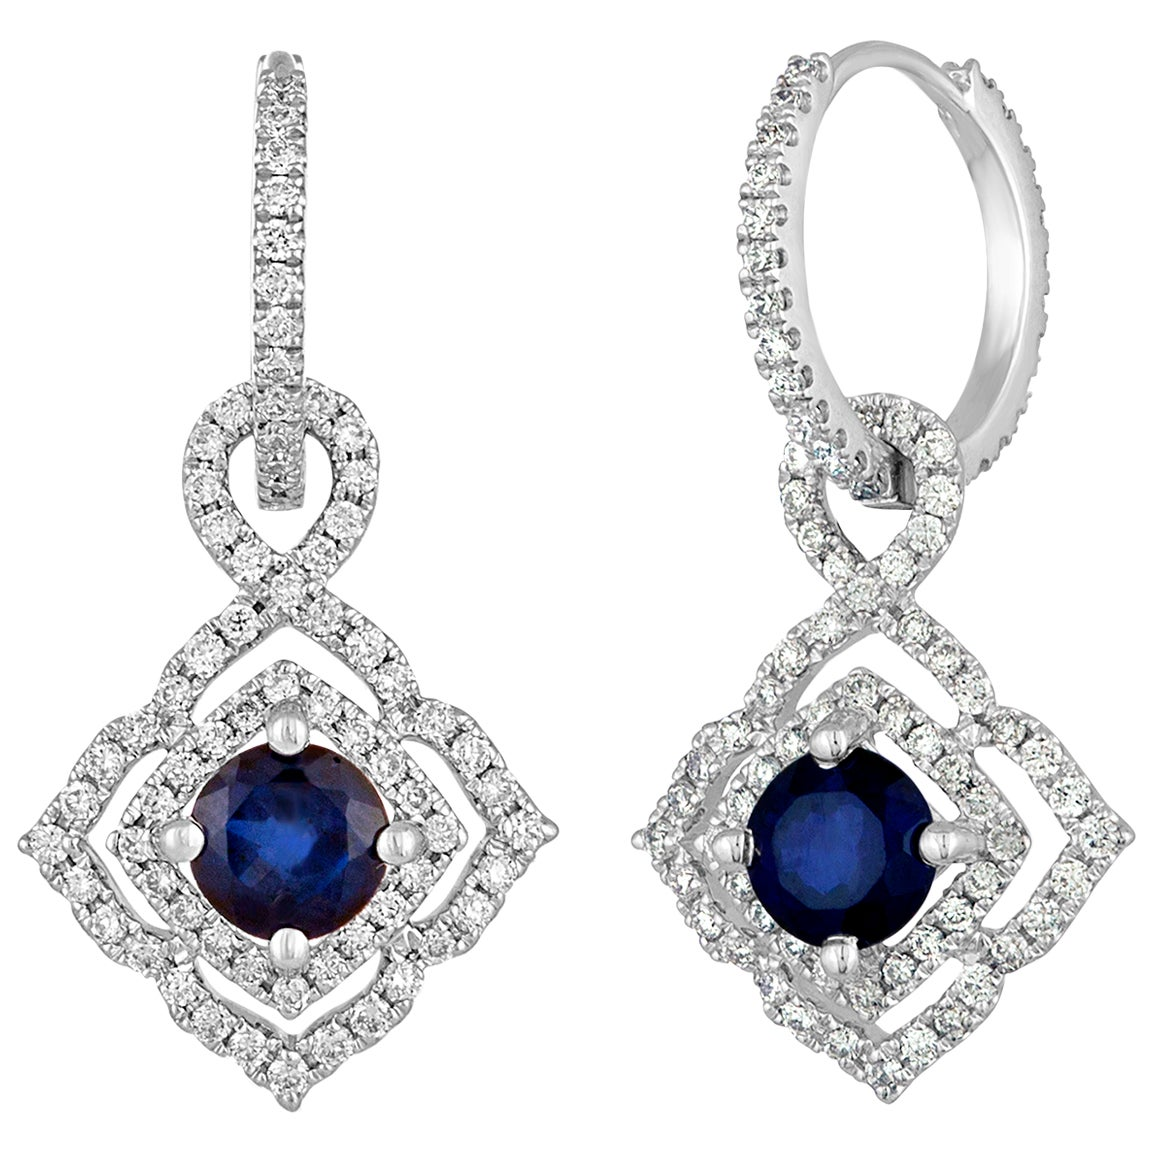 1.47 Carats Sapphire Diamond Gold Dangle Earrings